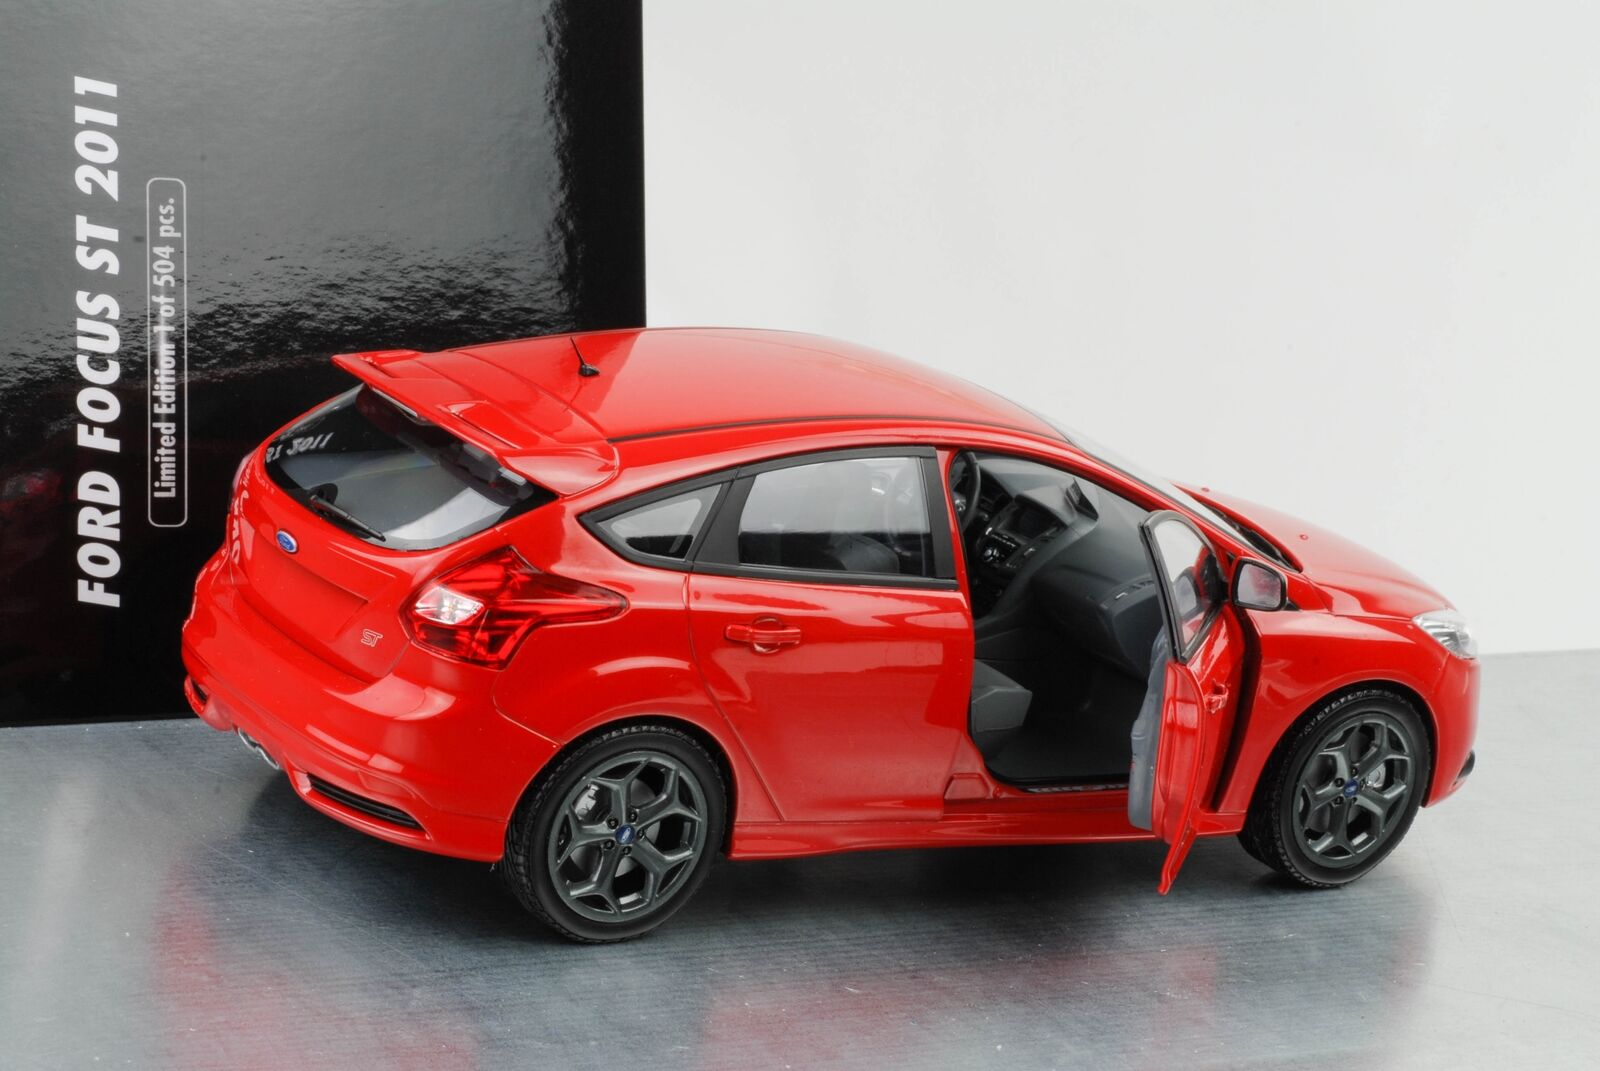 2011 Ford Focus st Red 1 18 Minichamps Nip